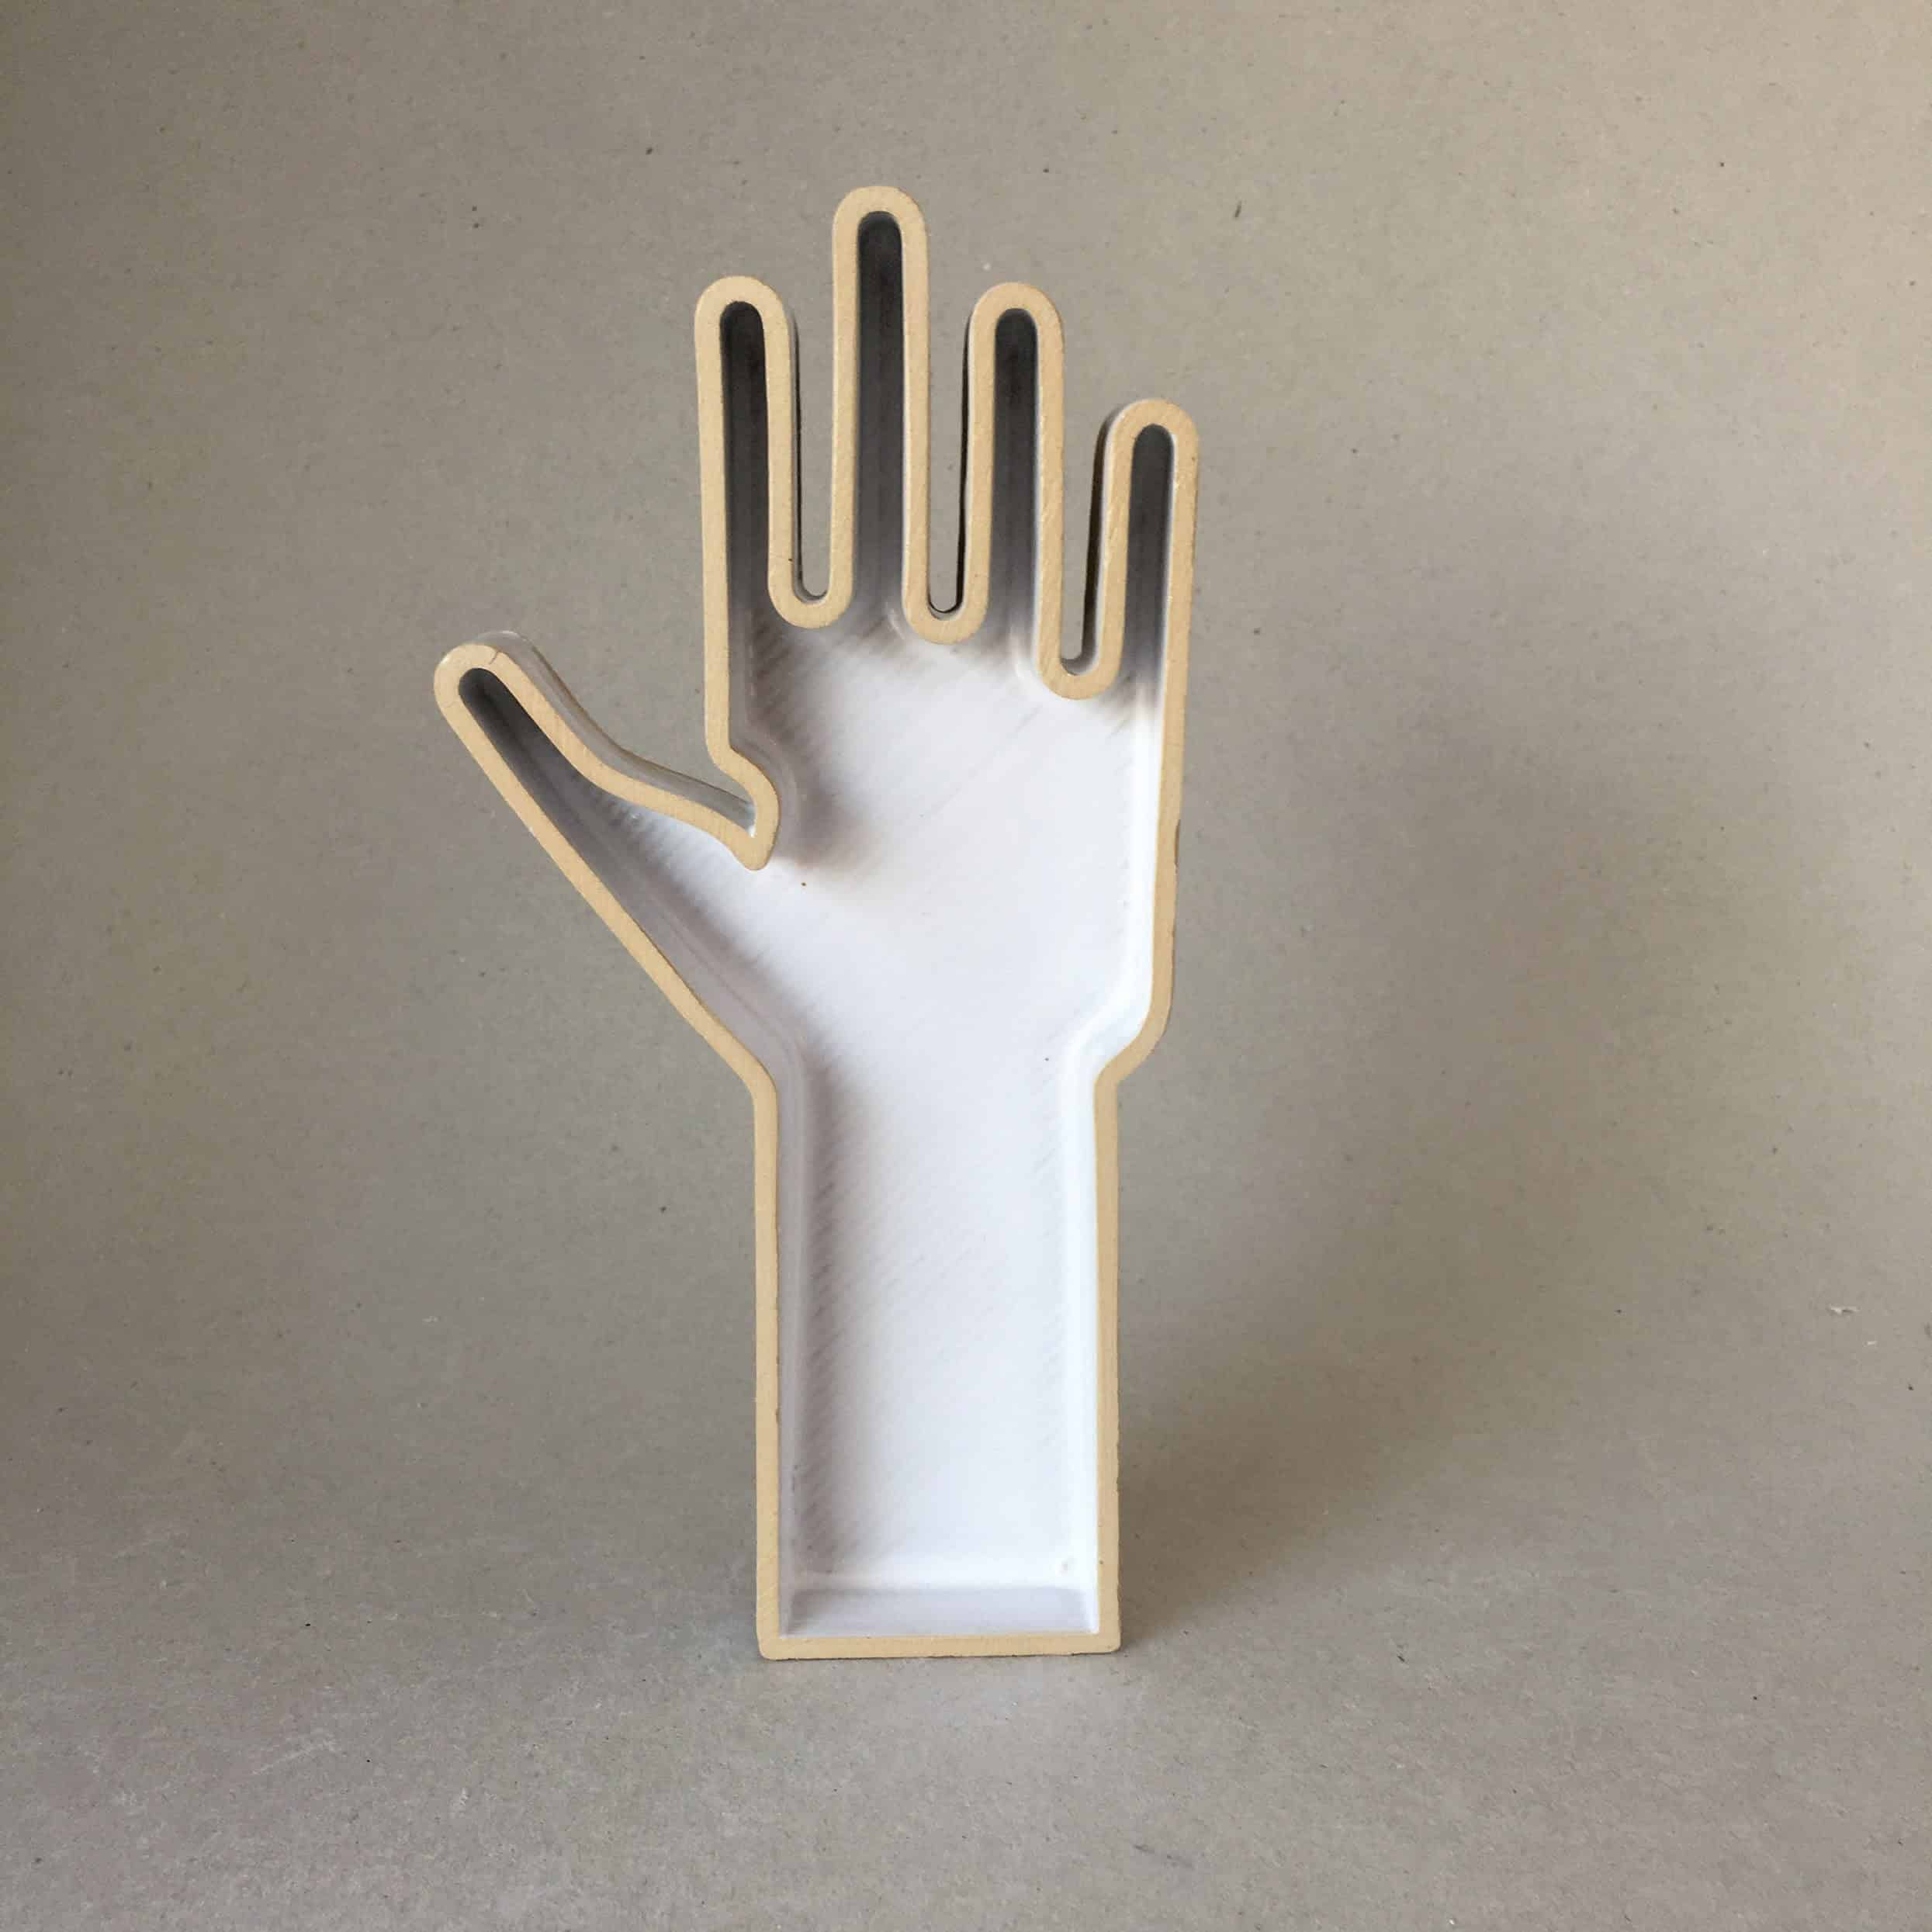 HND — Hand object made of ceramic